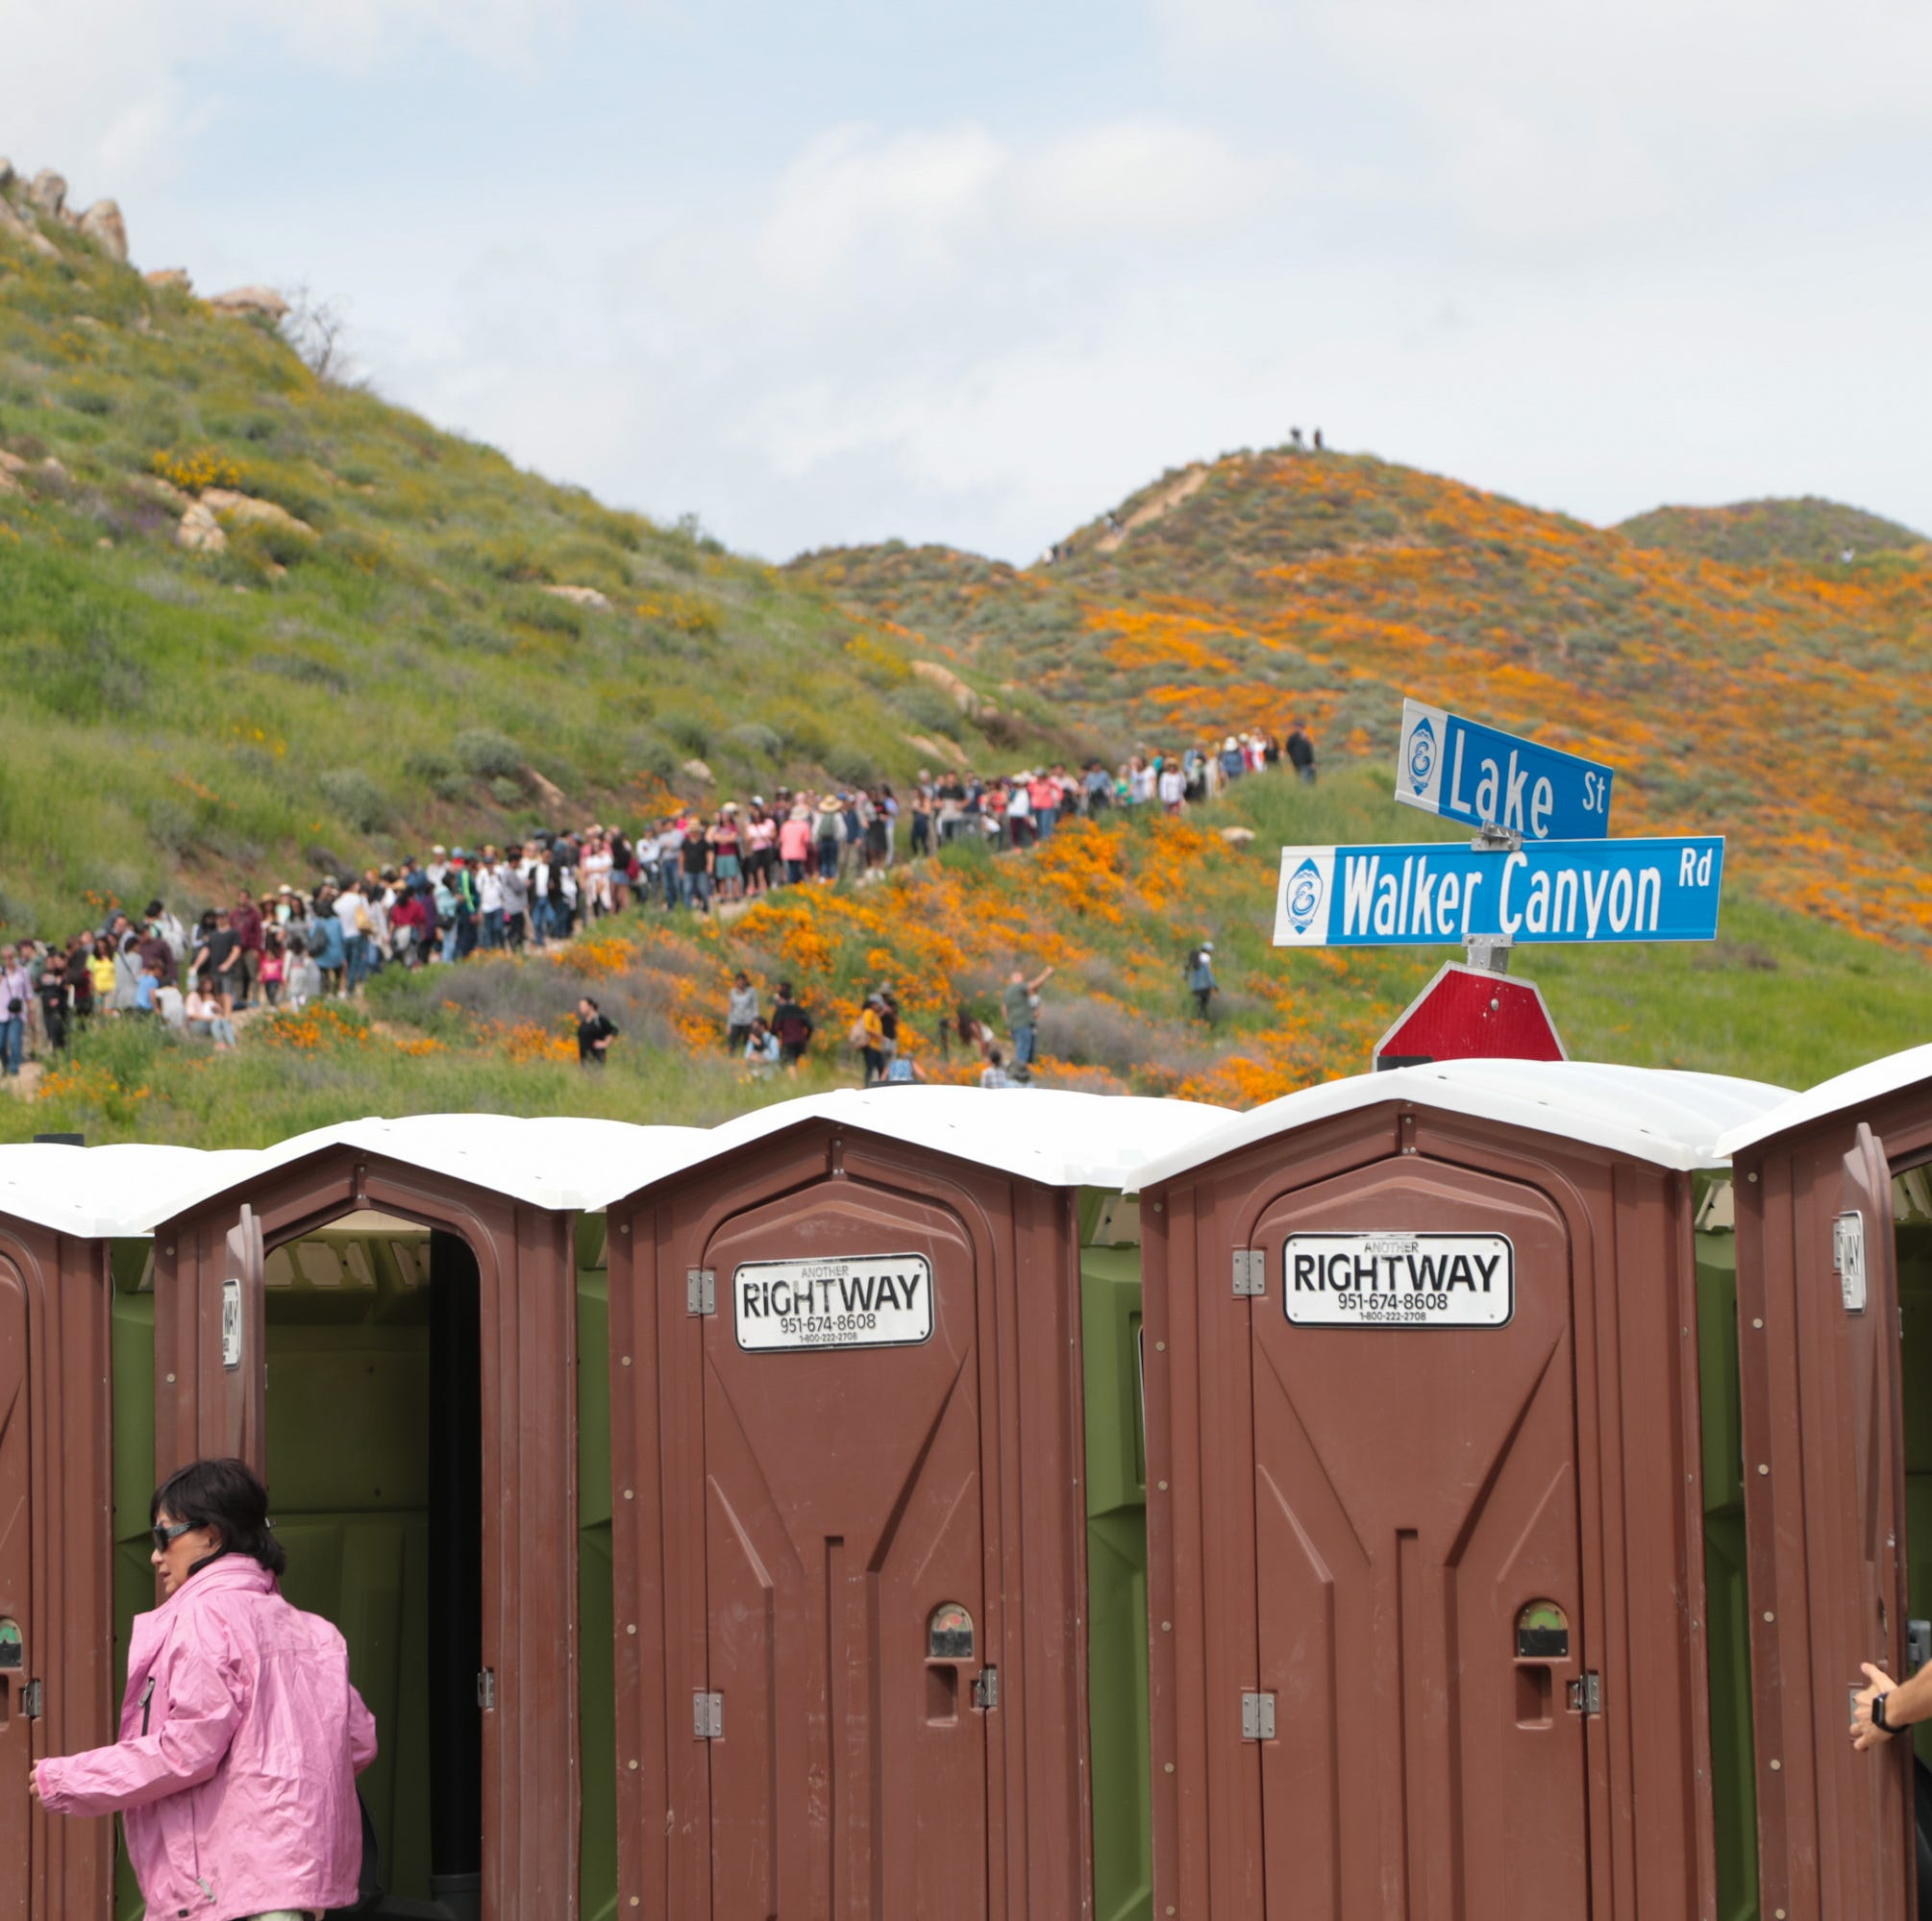 Want to see the poppy super bloom at Lake Elsinore? Brace yourself for large crowds and long lines